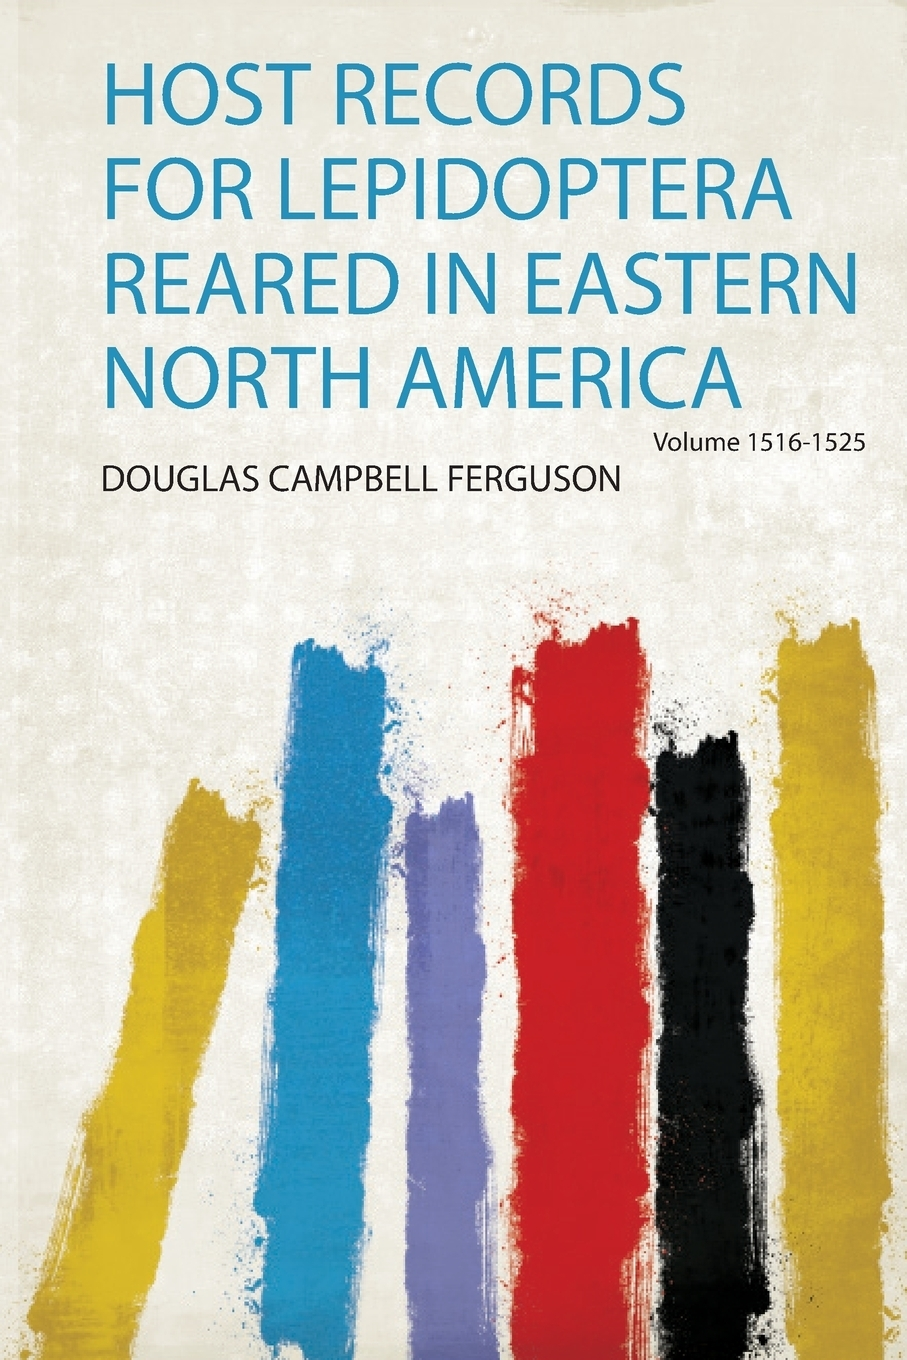 Douglas Campbell Ferguson. Host Records for Lepidoptera Reared in Eastern North America